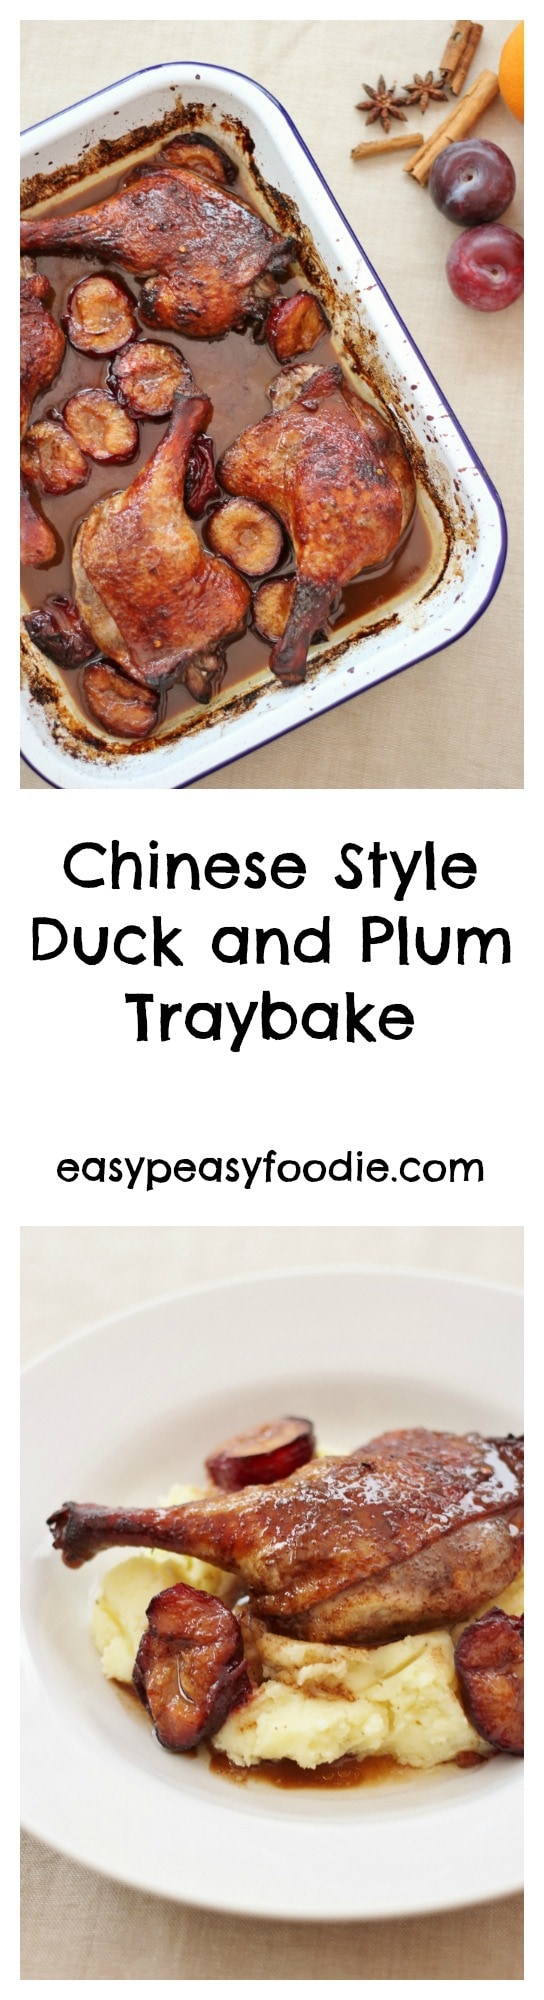 Flavoured with soy sauce, honey, Chinese five spice and chilli, this Chinese Style Duck and Plum Traybake tastes really decadent, but is actually super easy to make. #duck #duckrecipe #duckrecipes #chineseduck #plumsauce #duckandplumsauce #ducktraybake #plums #traybake #sheetpandinner#easymidweekmeals #easymeals #midweekmeals #easydinners #dinnertonight dinnertonite #familydinners #familyfood #vegan #vegetarian #glutenfree #dairyfree #easypeasyfoodie #cookblogshare